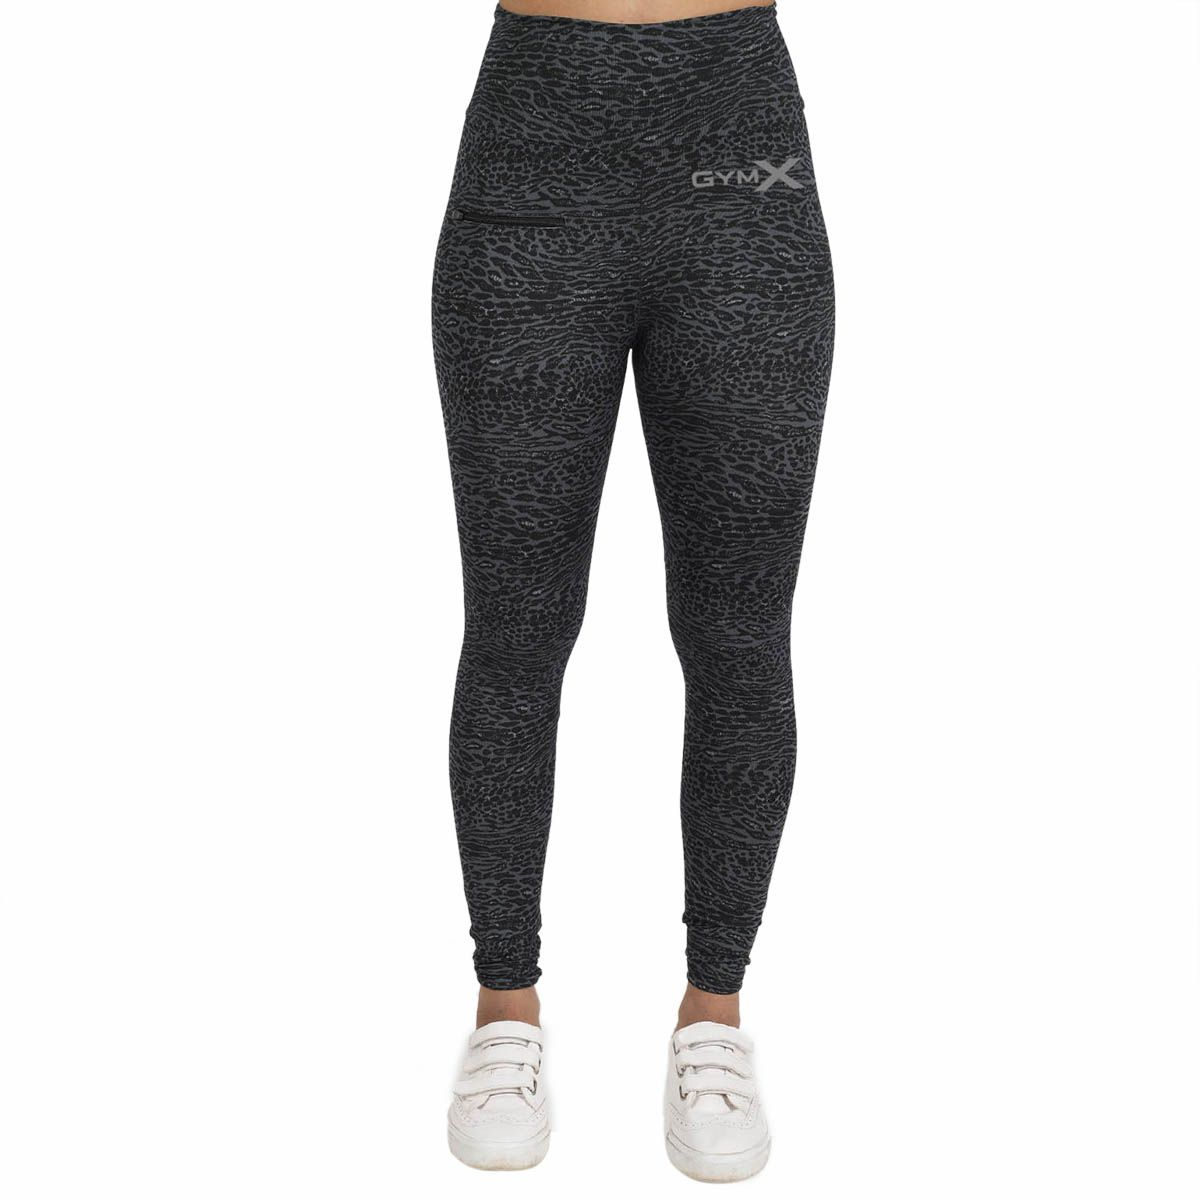 GymX Womens Polyester Allure Leggings: Black Cheetah Skin-Black